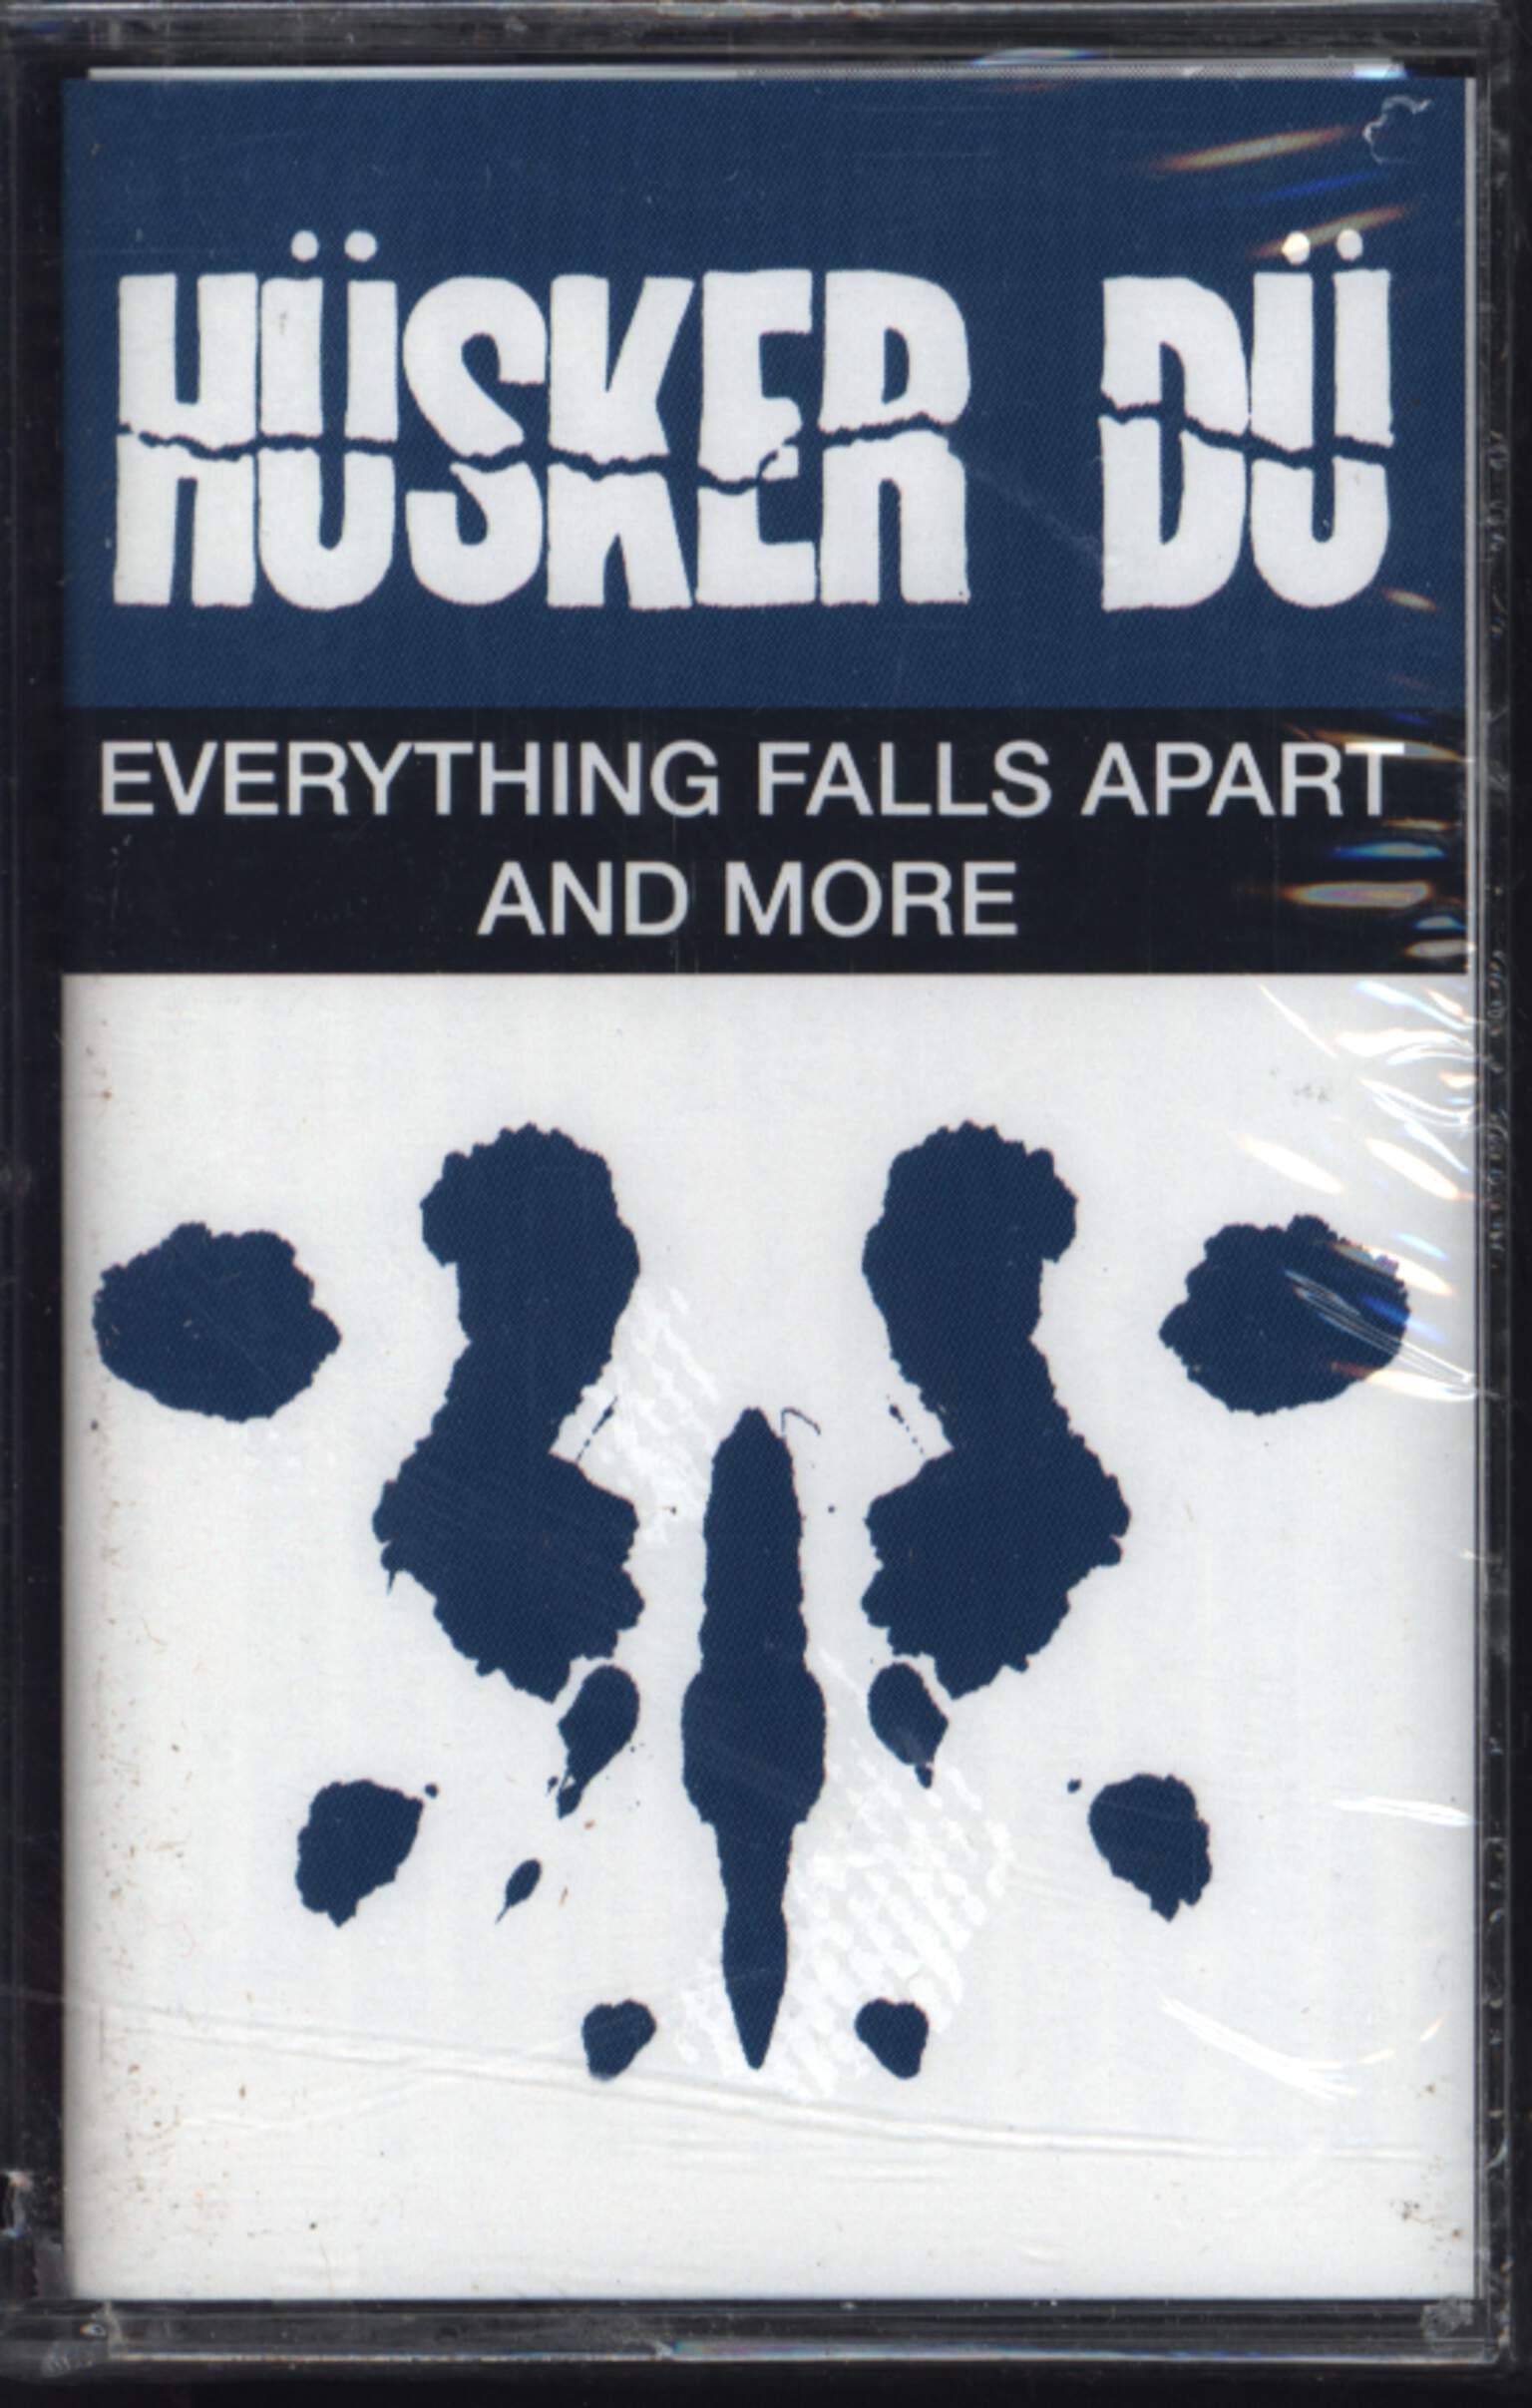 Hüsker Dü: Everything Falls Apart And More, Compact Cassette